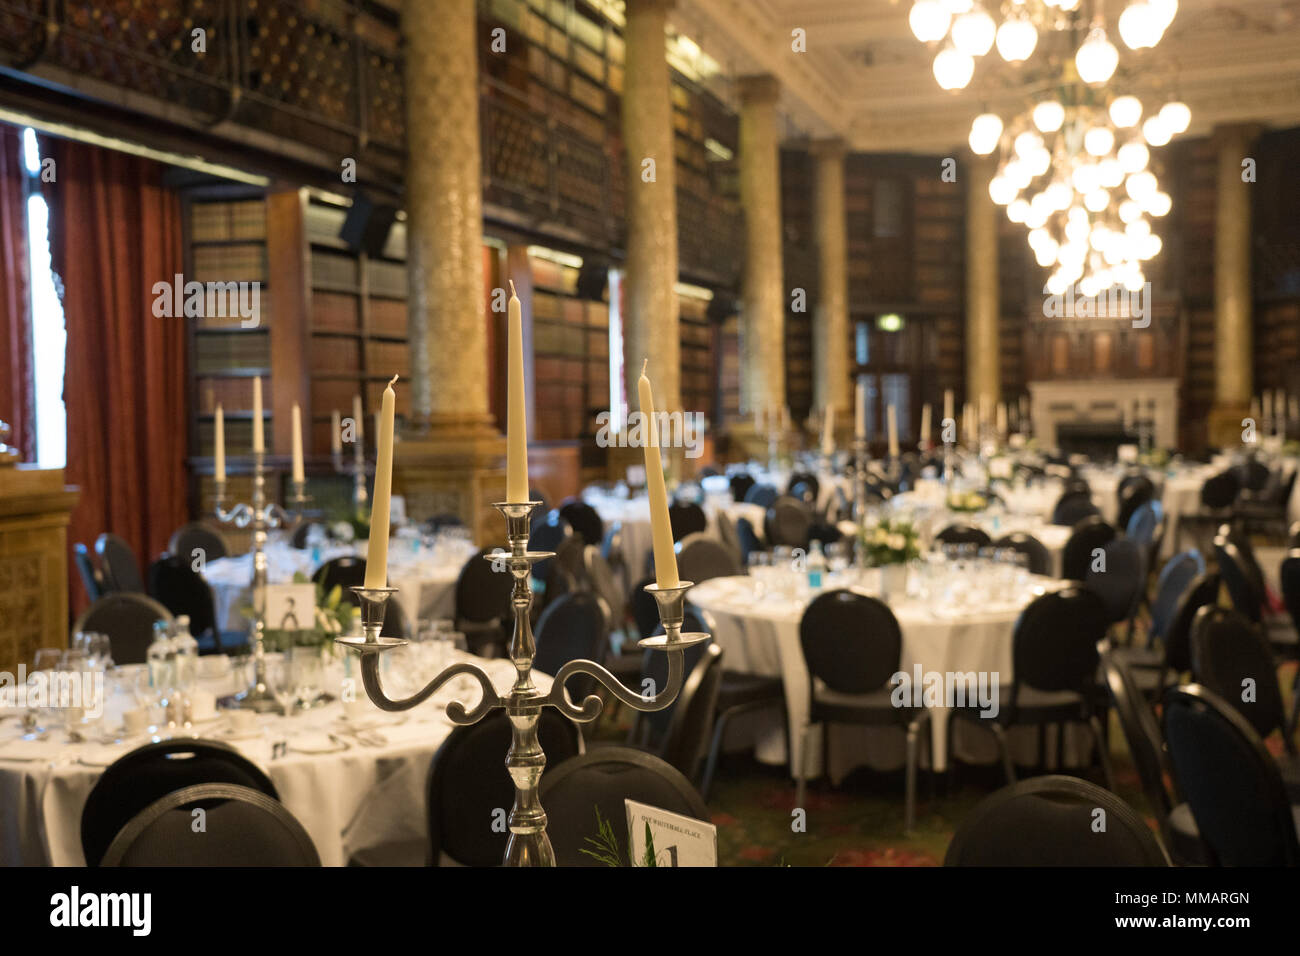 Dinner clubs dating london